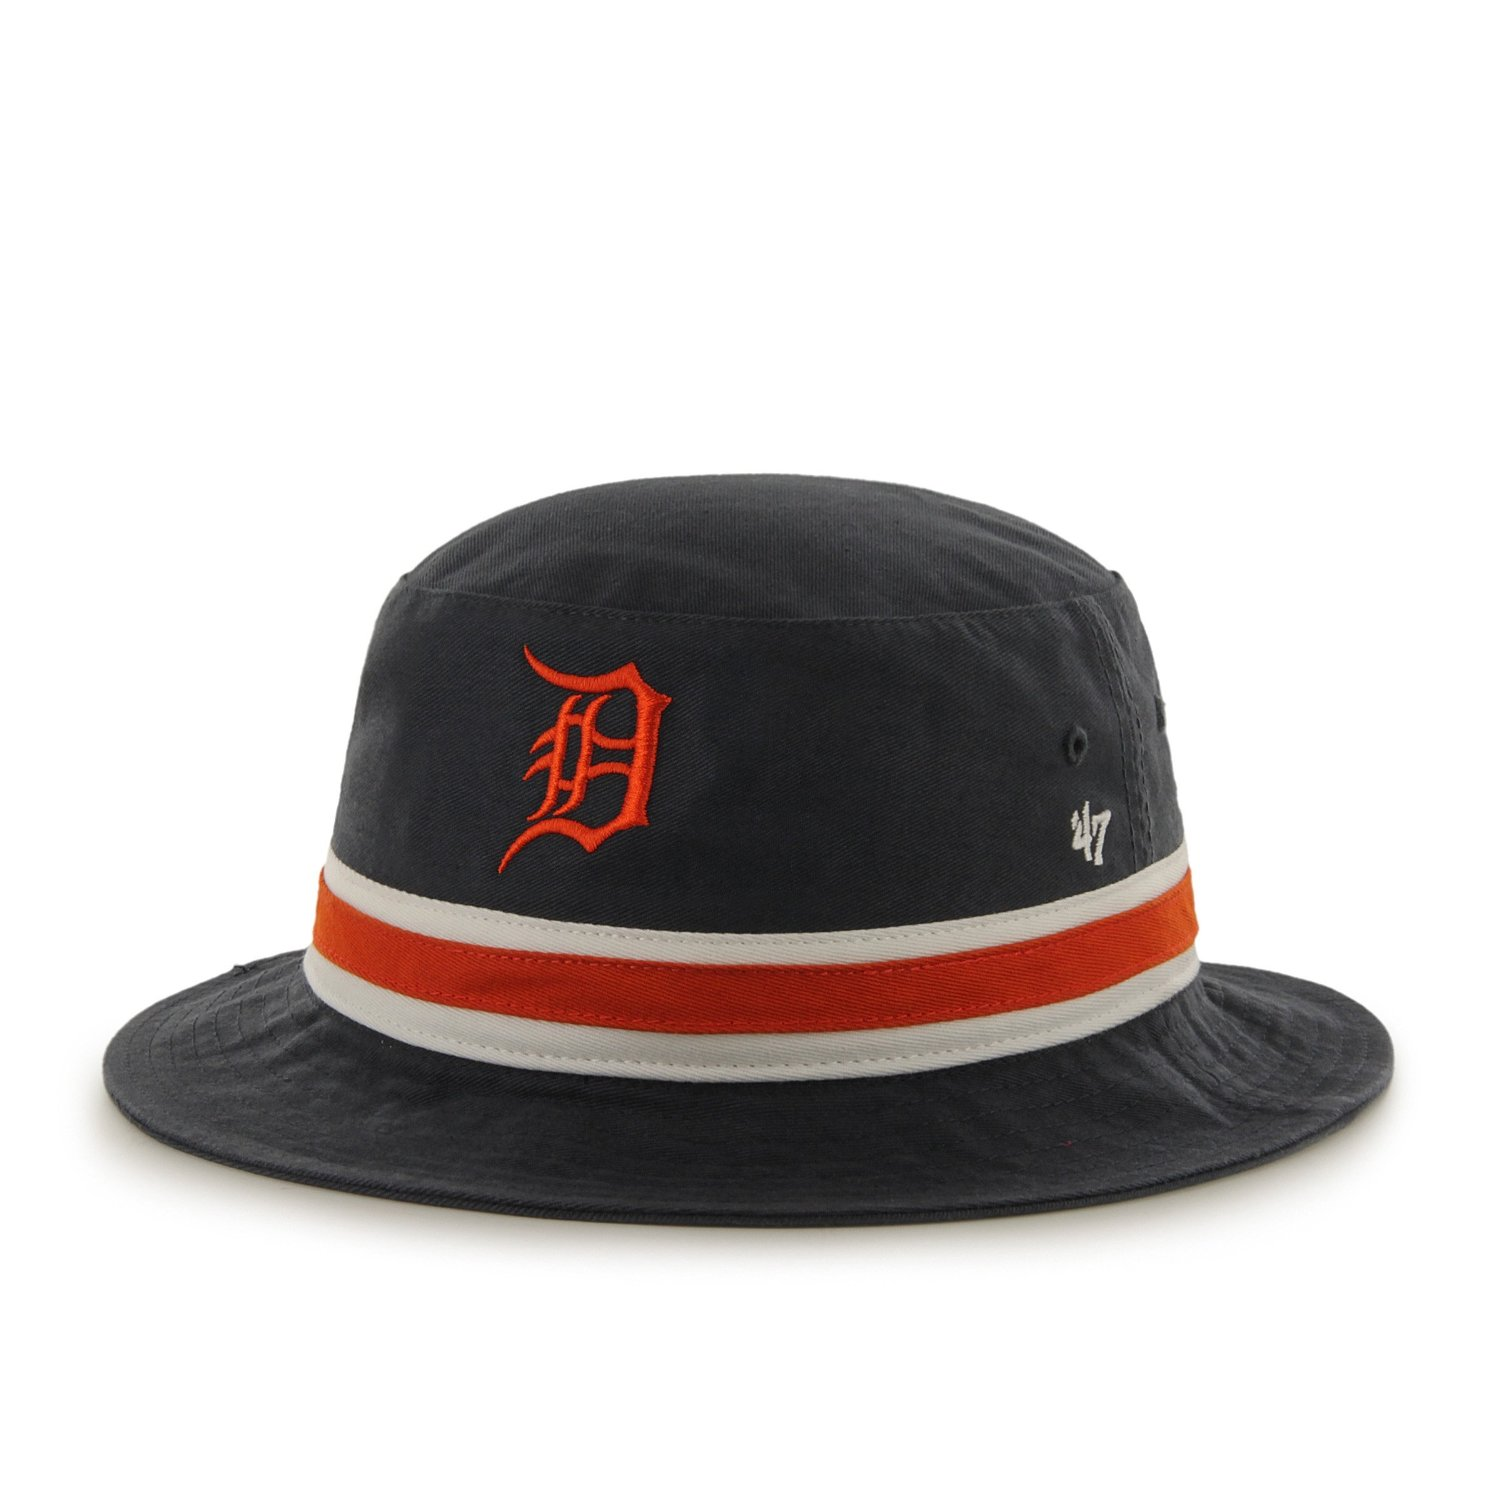 47 Brand Striped Bucket Hat - MLB Gilligan Fishing Cap